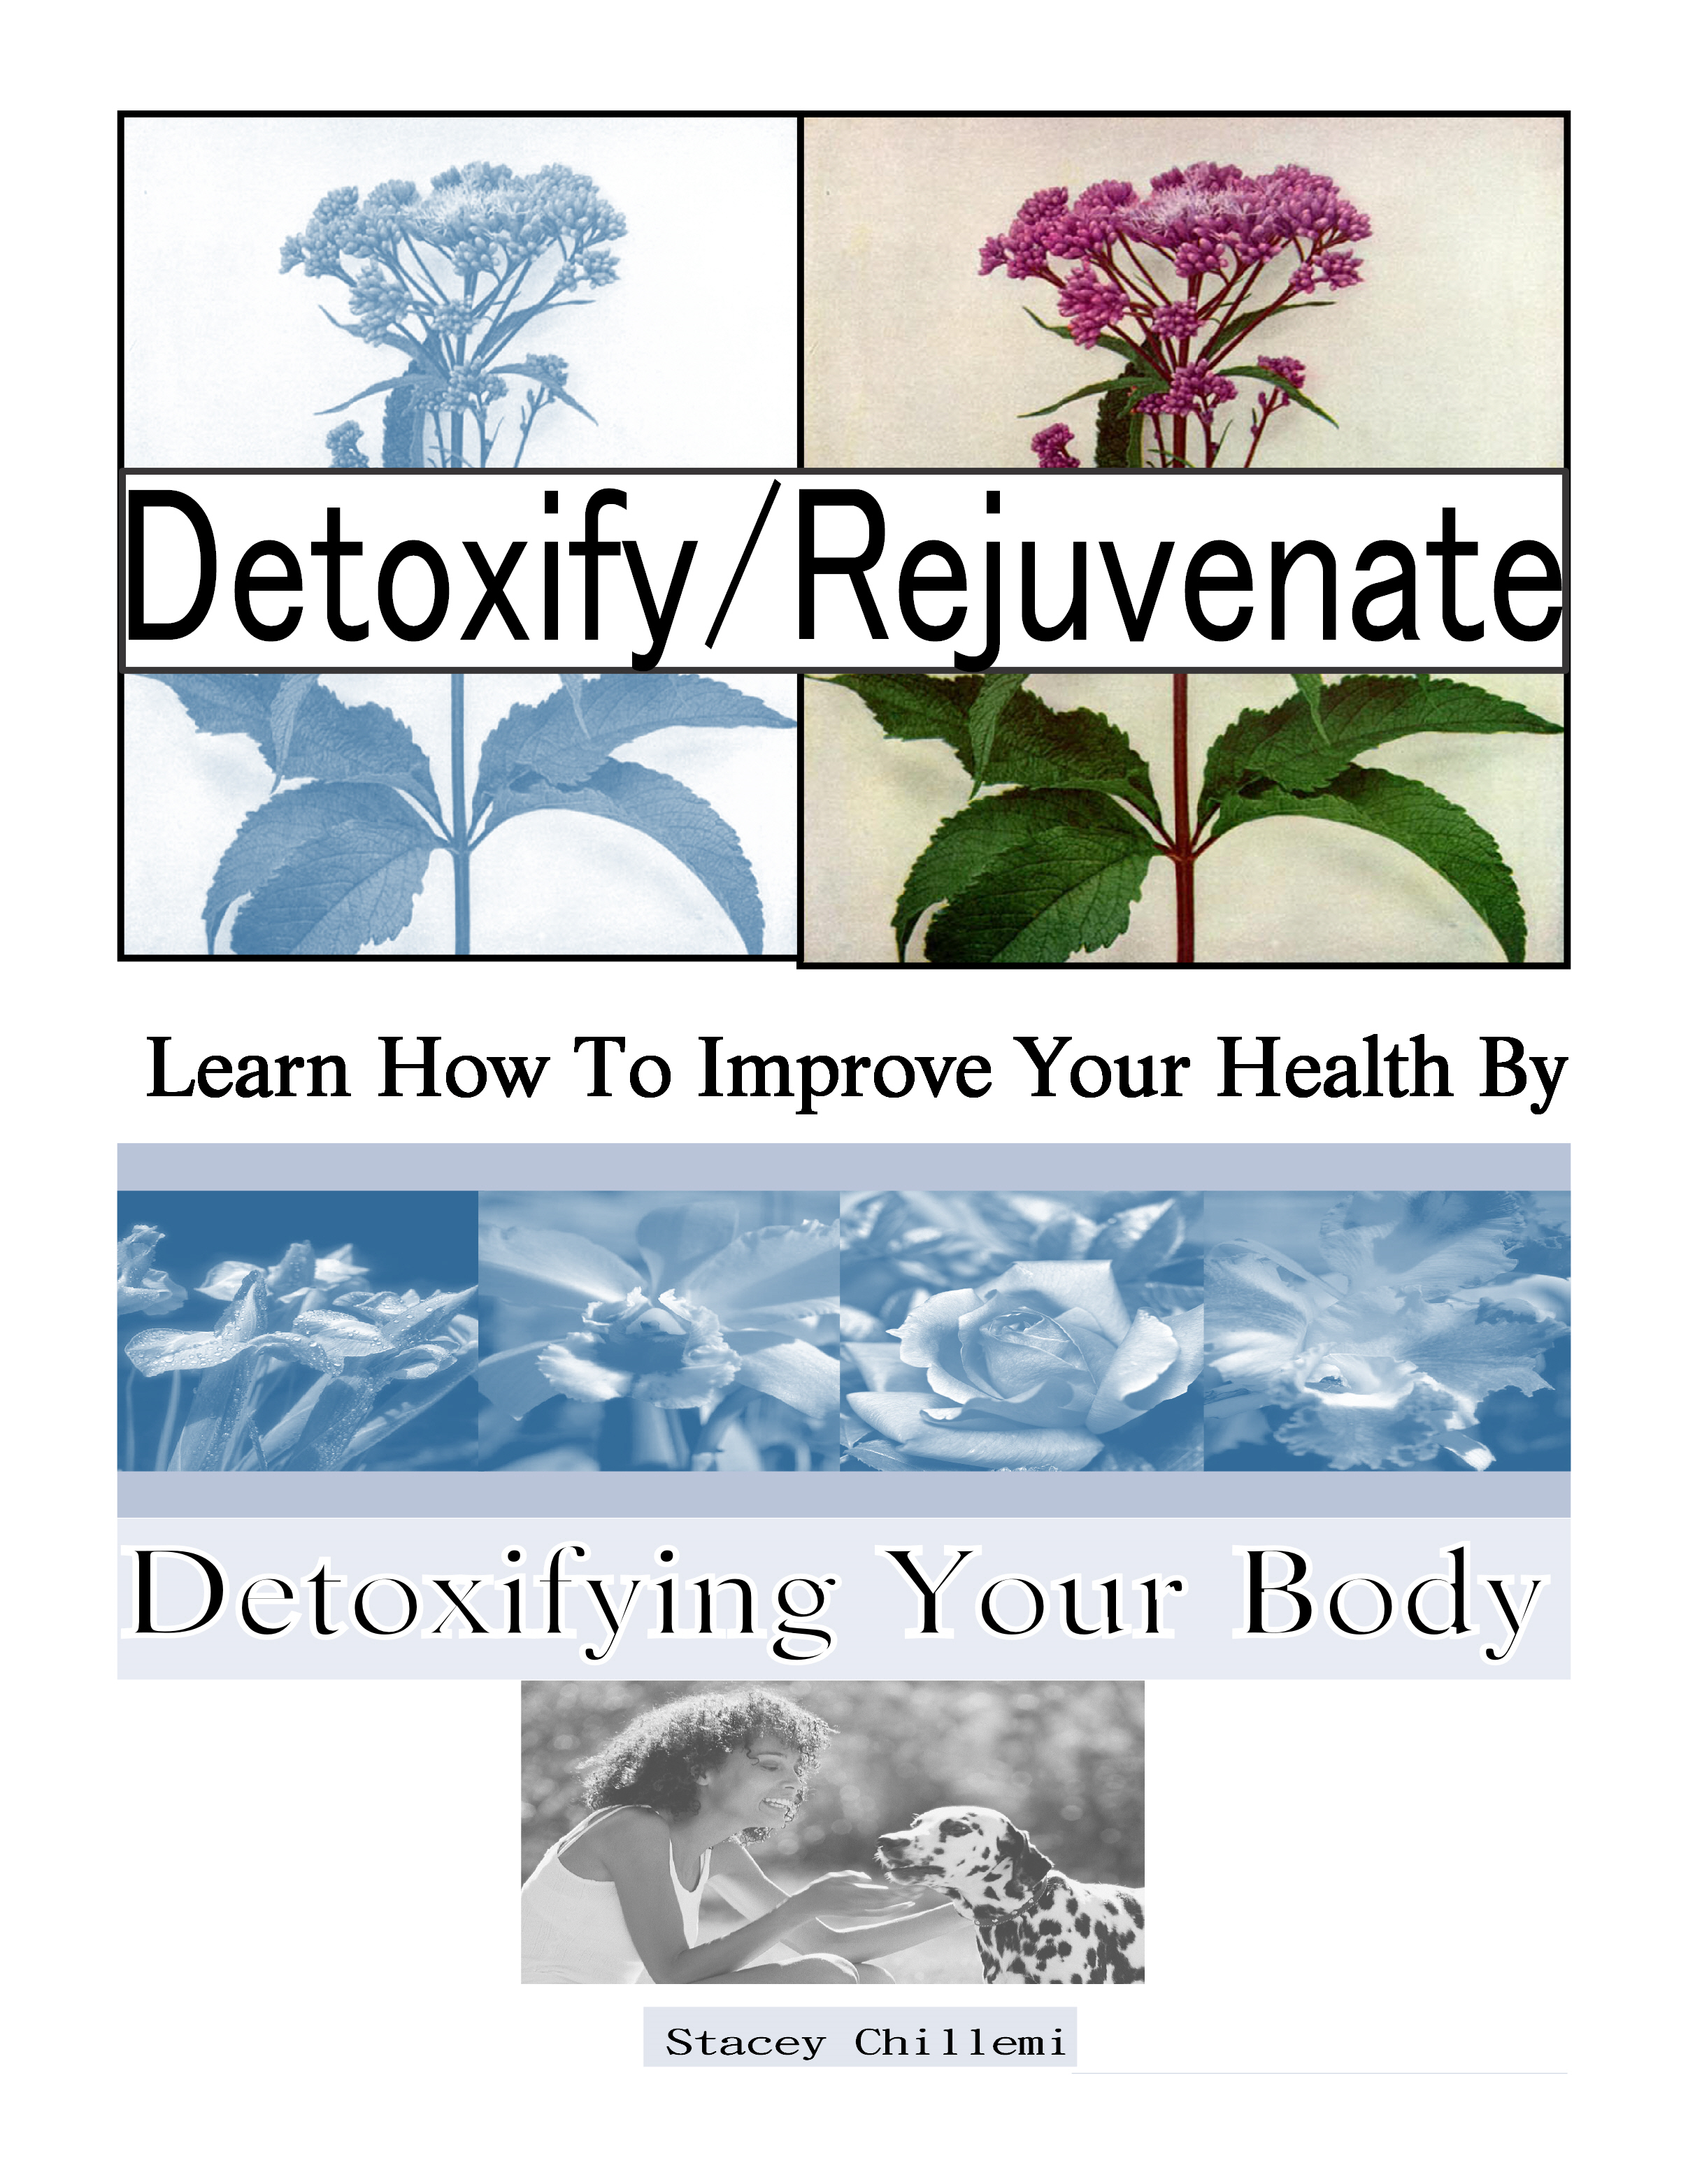 Detoxify/Rejuvenate: Learn How You Can Improve Your Health By Detoxifying Your Body By: Stacey Chillemi